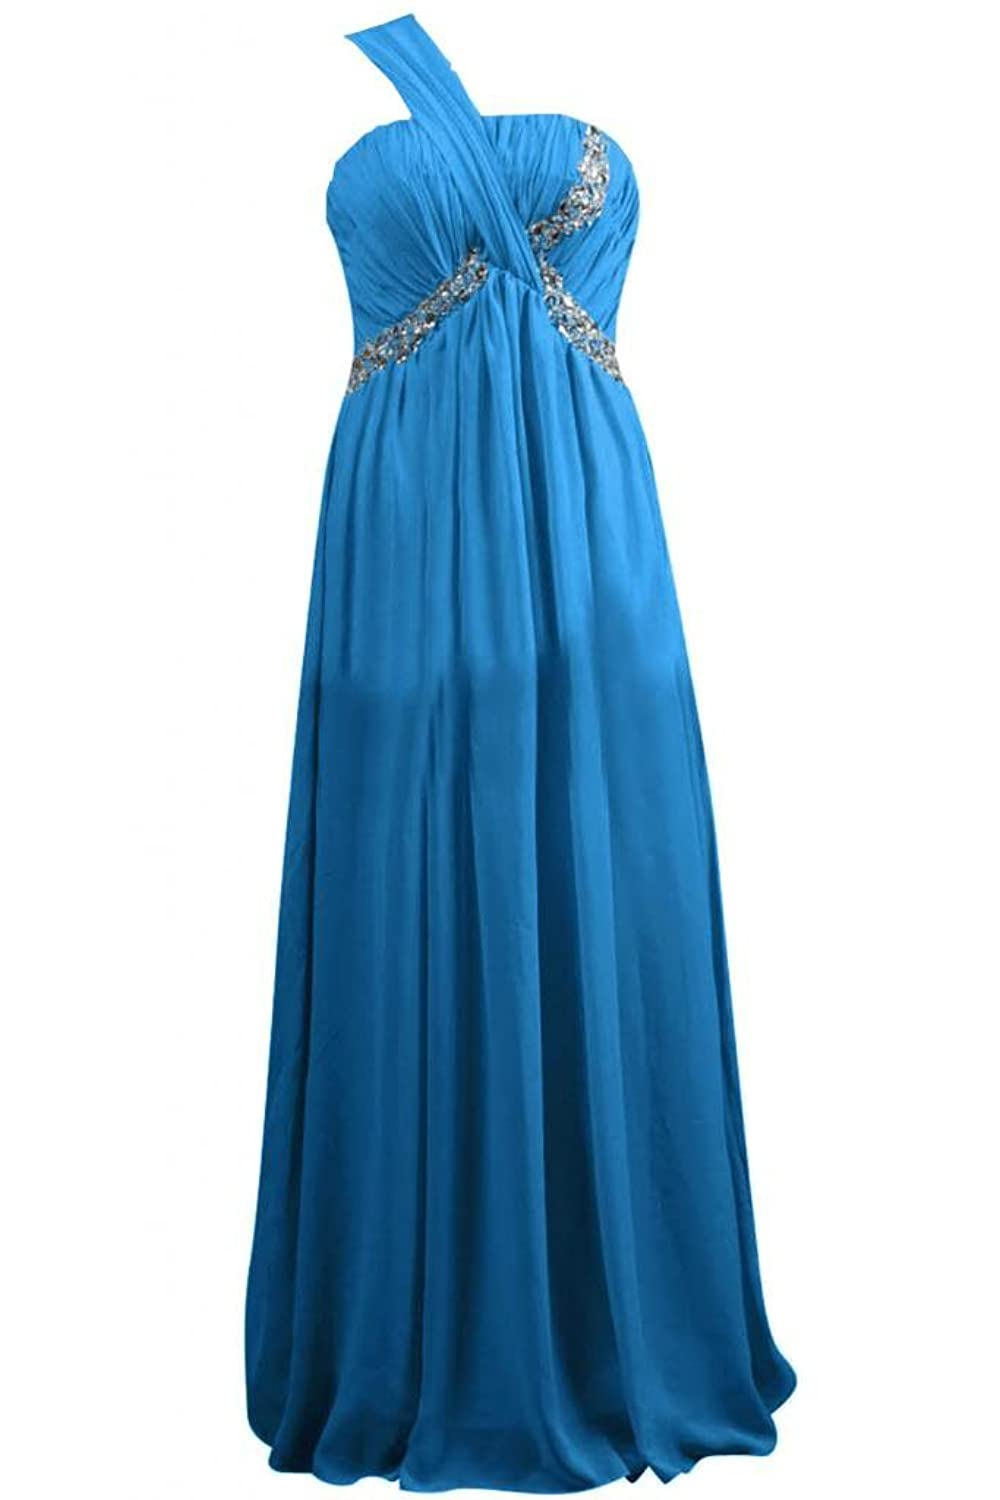 Sunvary 2015 Women Vintage Classical One Shoulder Long Pageant Gowns Prom Dress